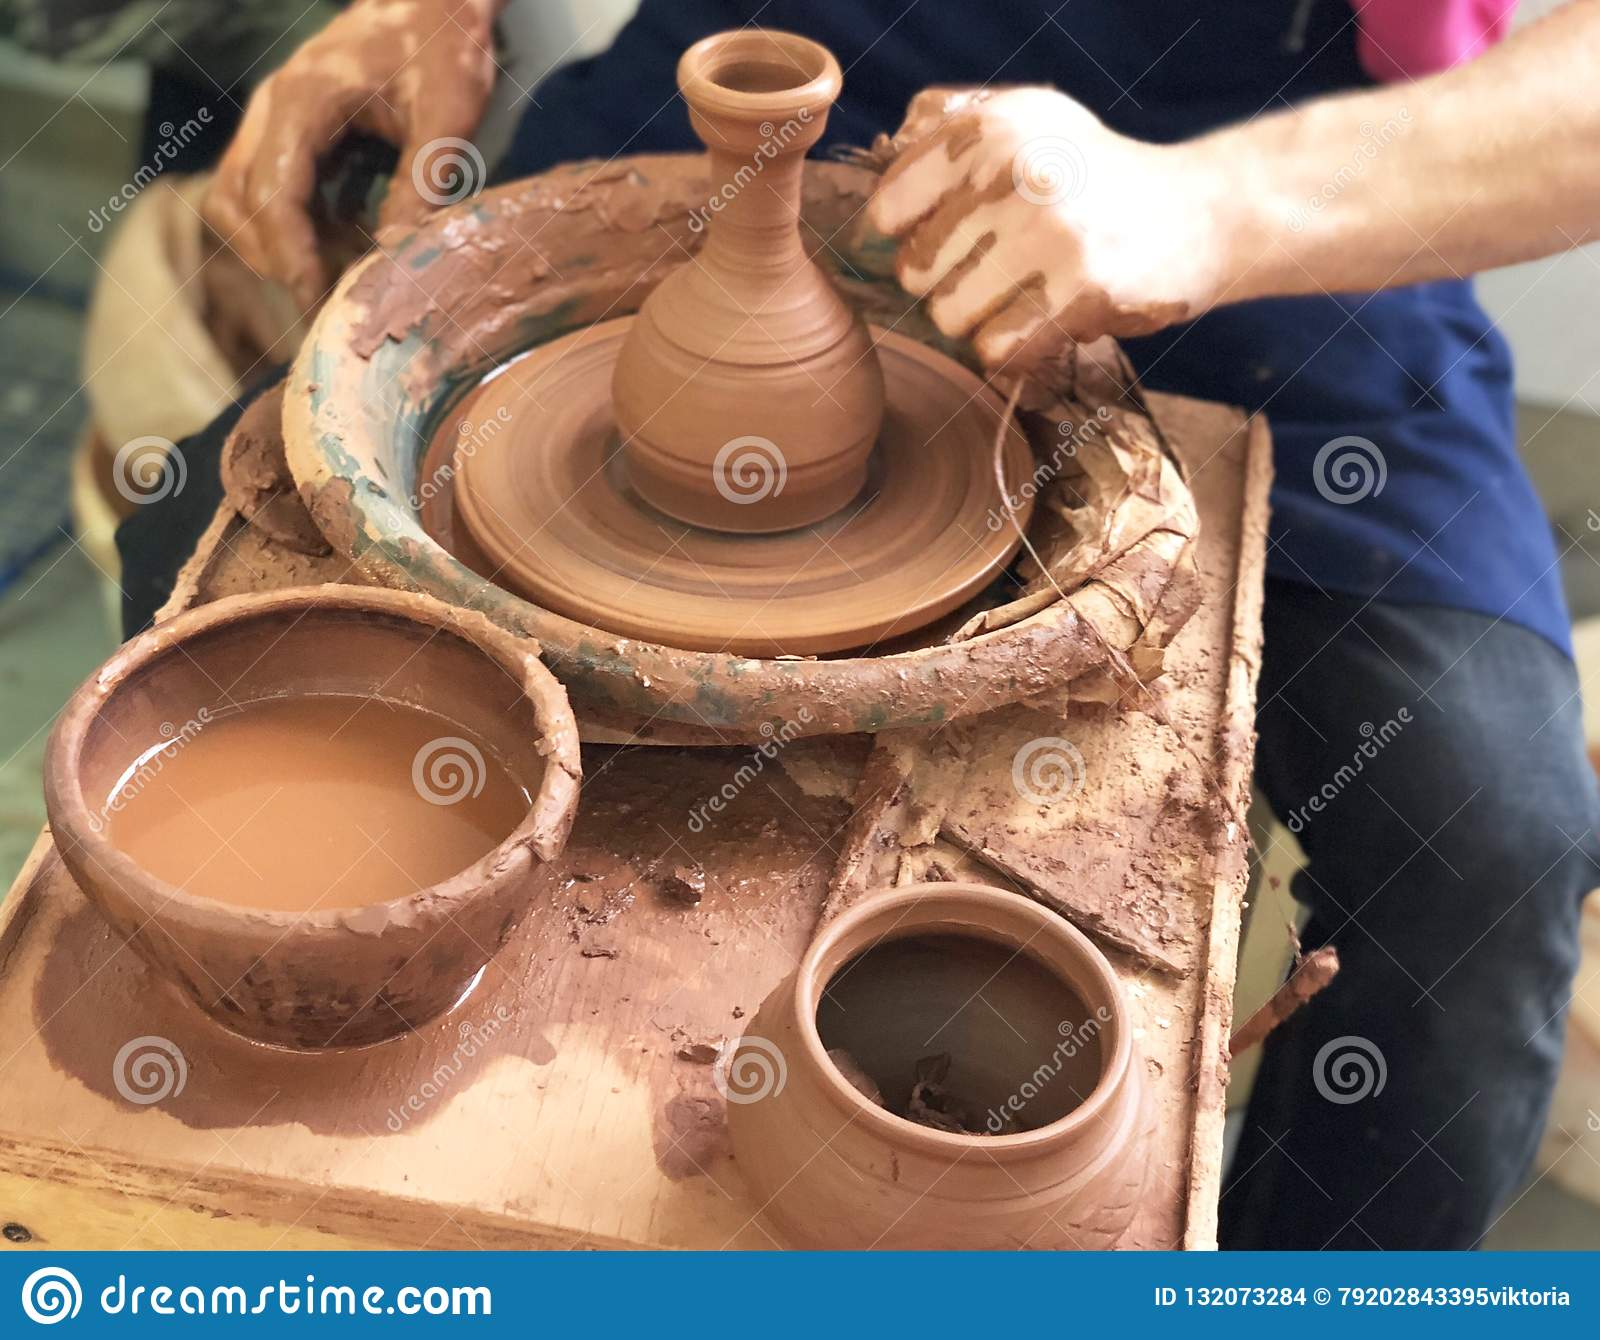 The hands of the Potter who makes the dishes from brown clay